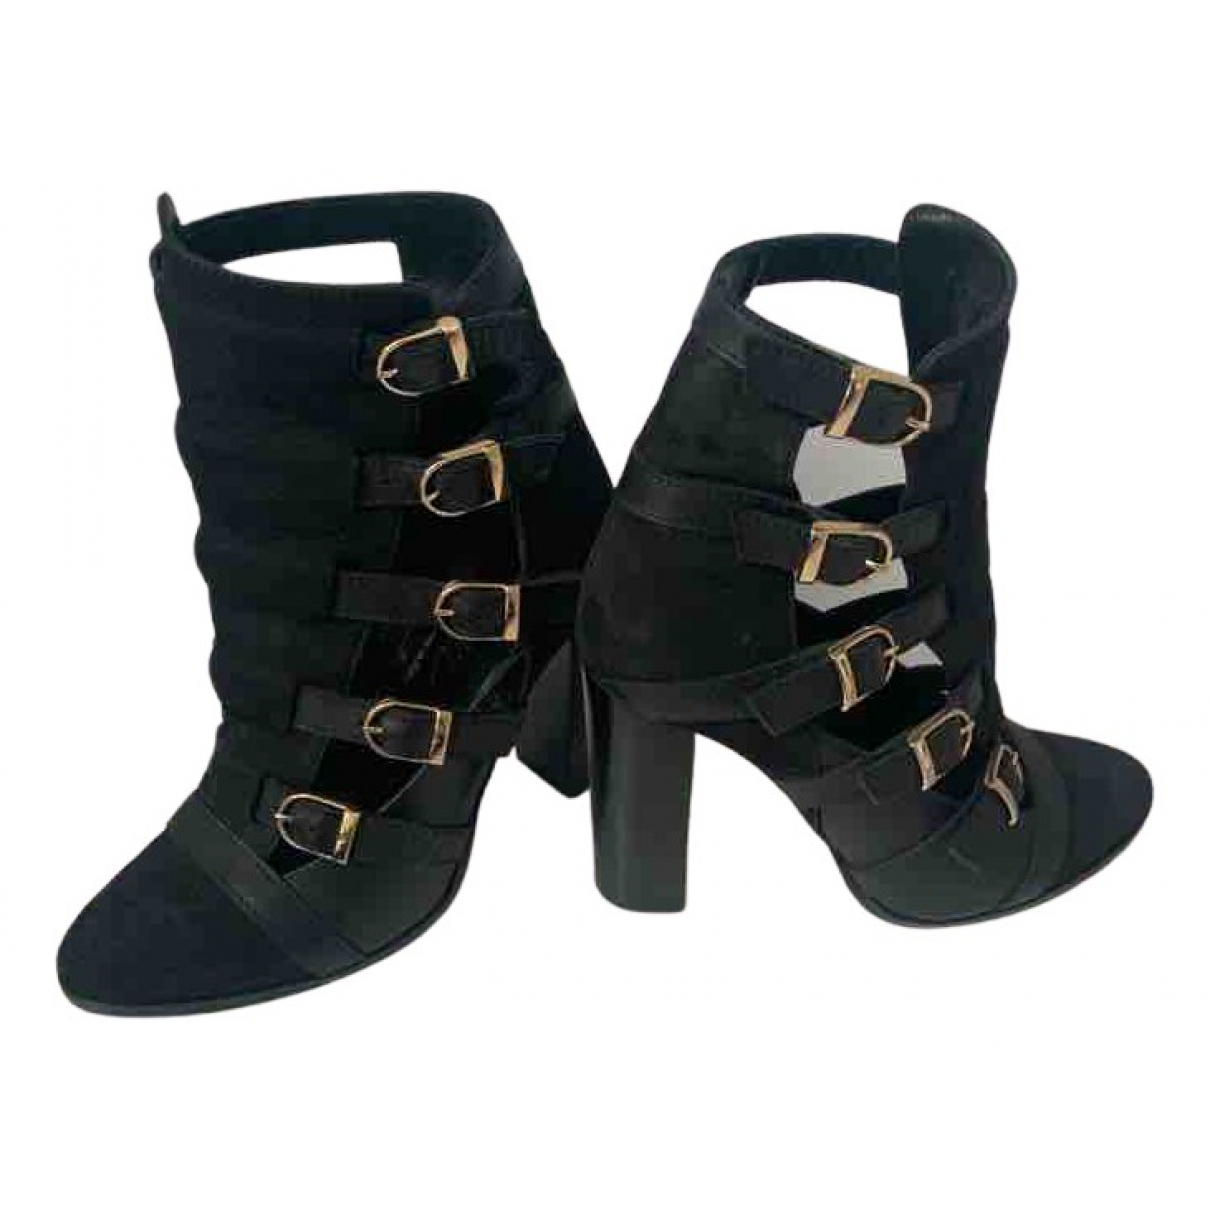 Inga N Black Leather Ankle boots for Women 36 EU